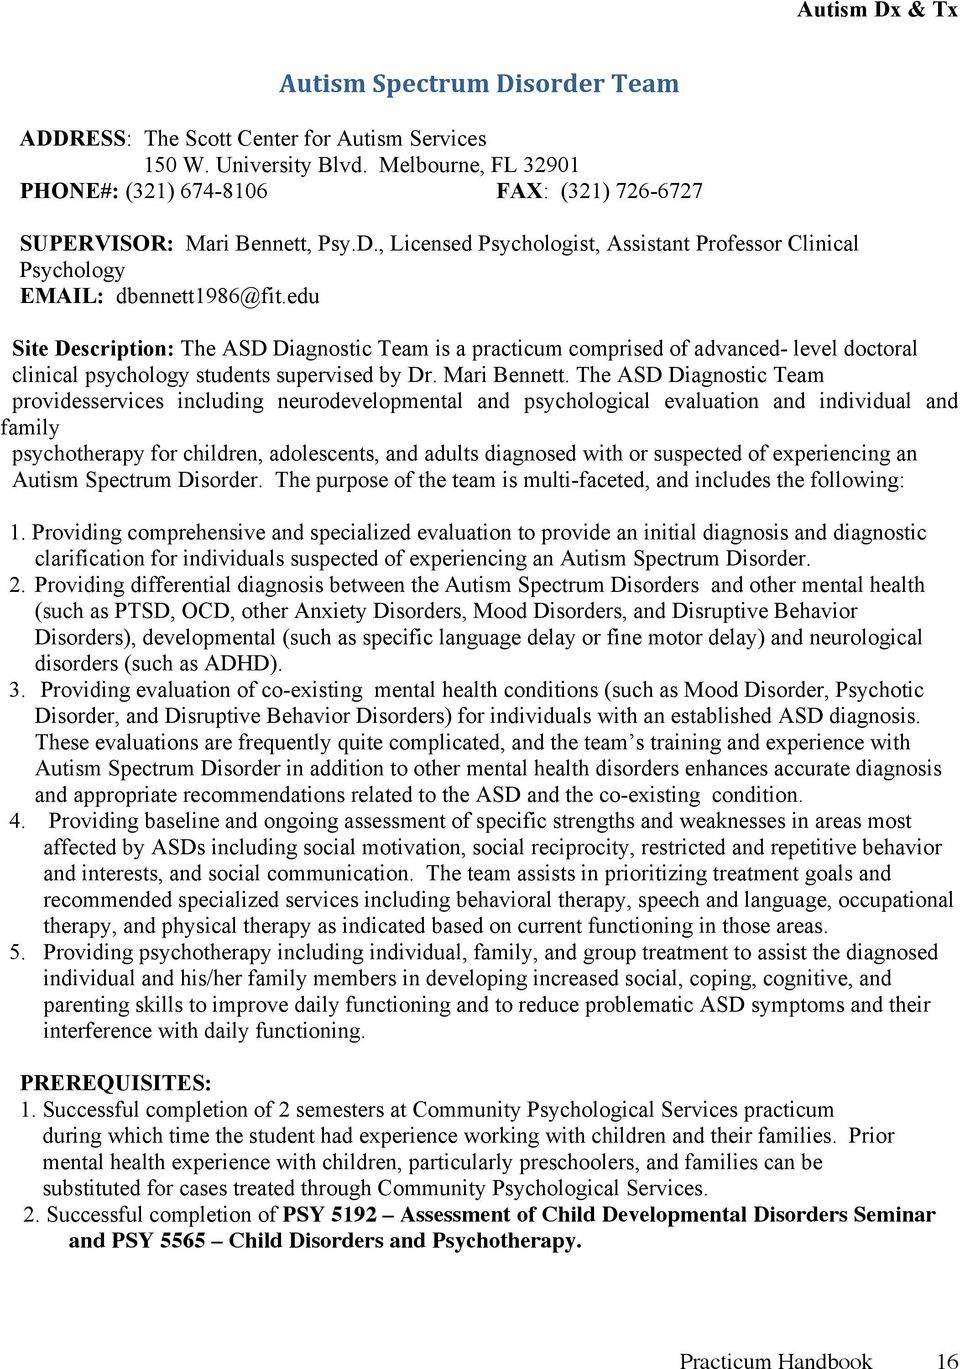 edu Site Description: The ASD Diagnostic Team is a practicum comprised of advanced- level doctoral clinical psychology students supervised by Dr. Mari Bennett.